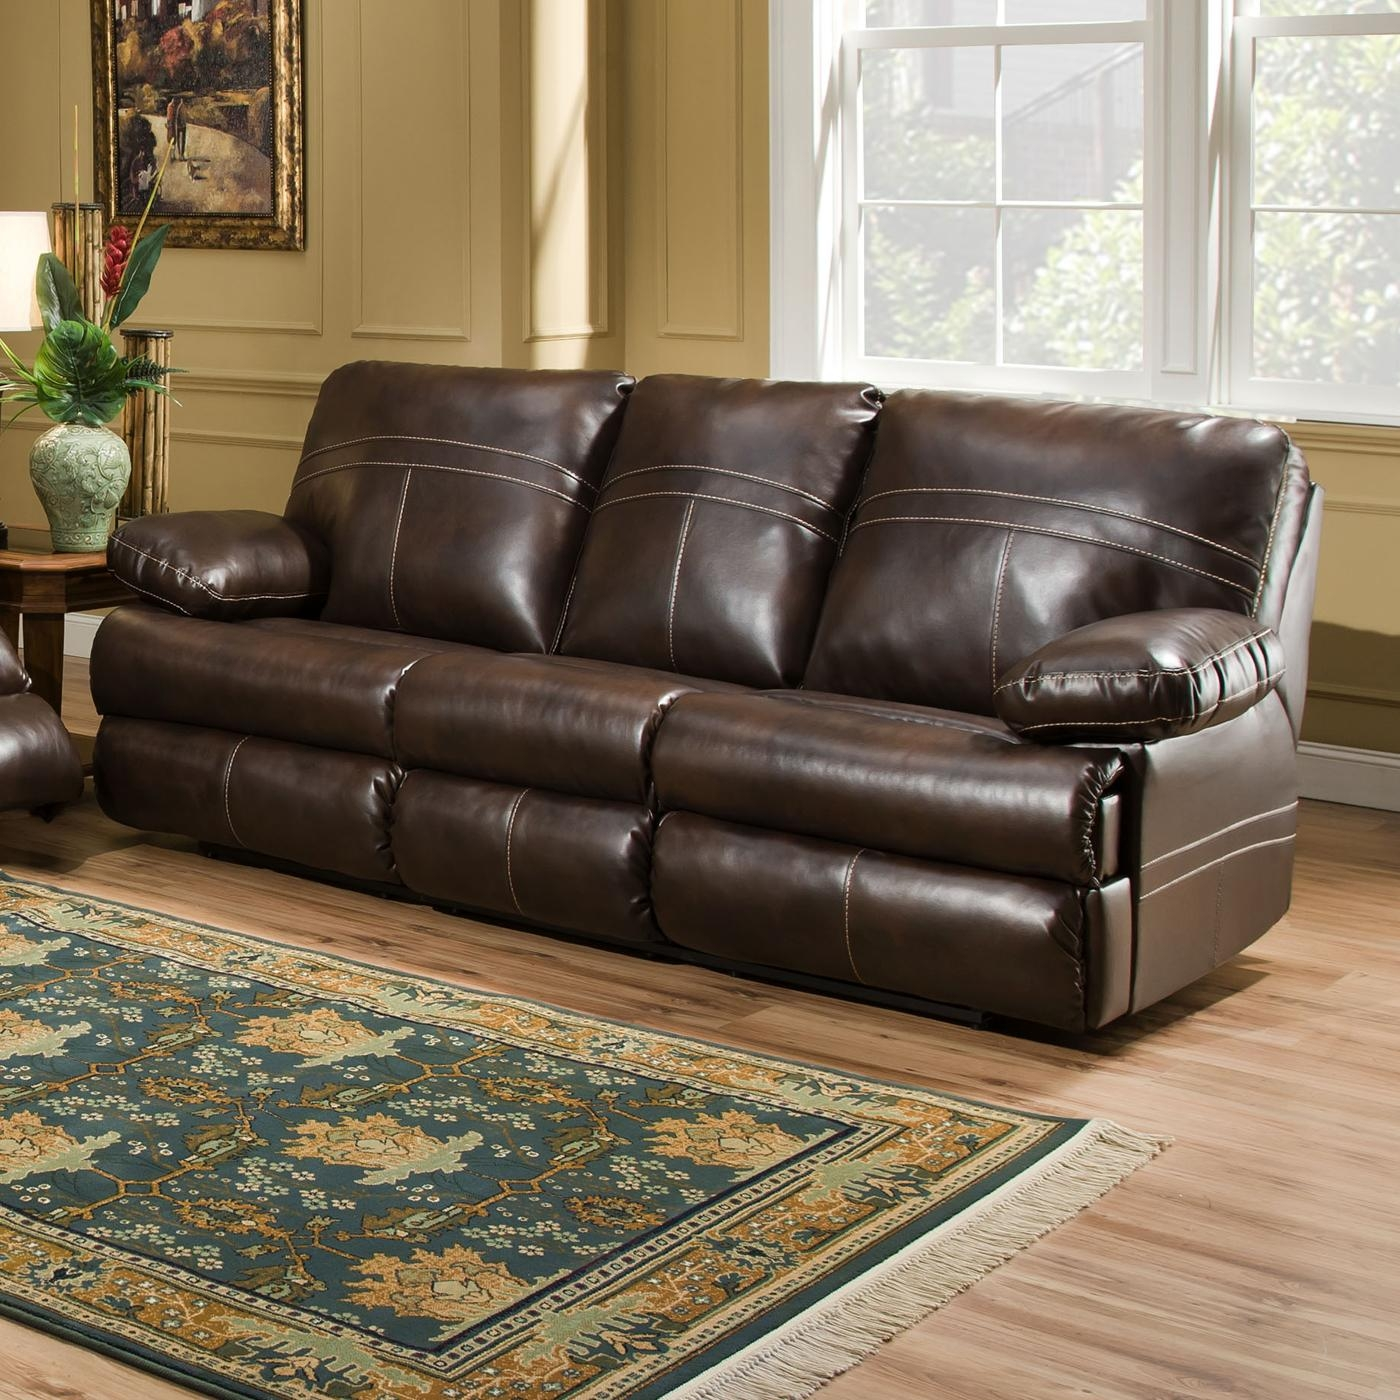 Simmons Bonded Leather Sofa With Ideas Image 20563 | Kengire For Simmons Bonded Leather Sofas (Image 9 of 20)